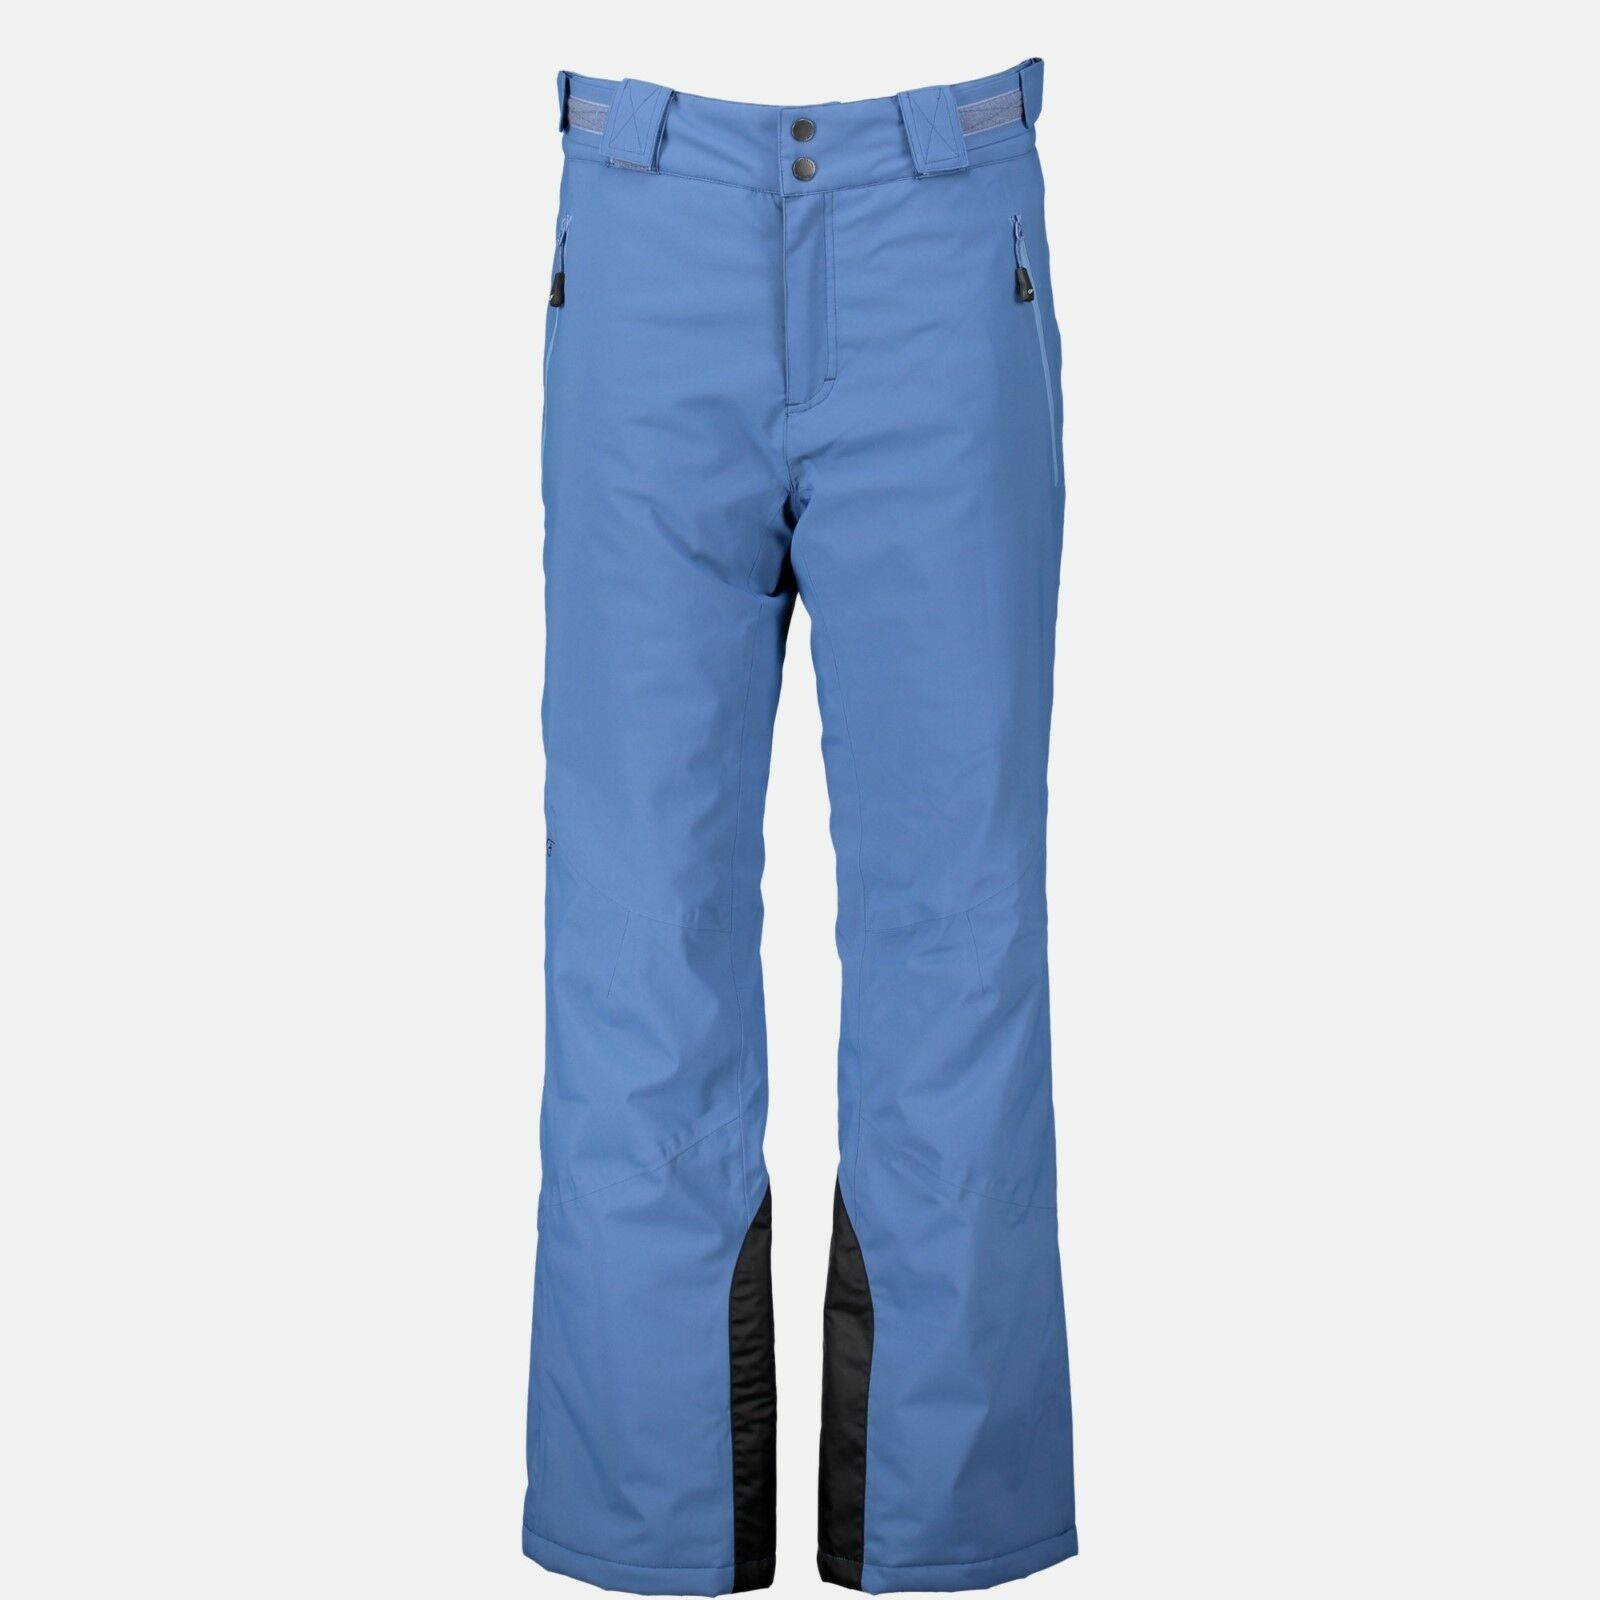 Five seasons Paley Pant Men invierno pantalones impermeables para caballeros forro azul